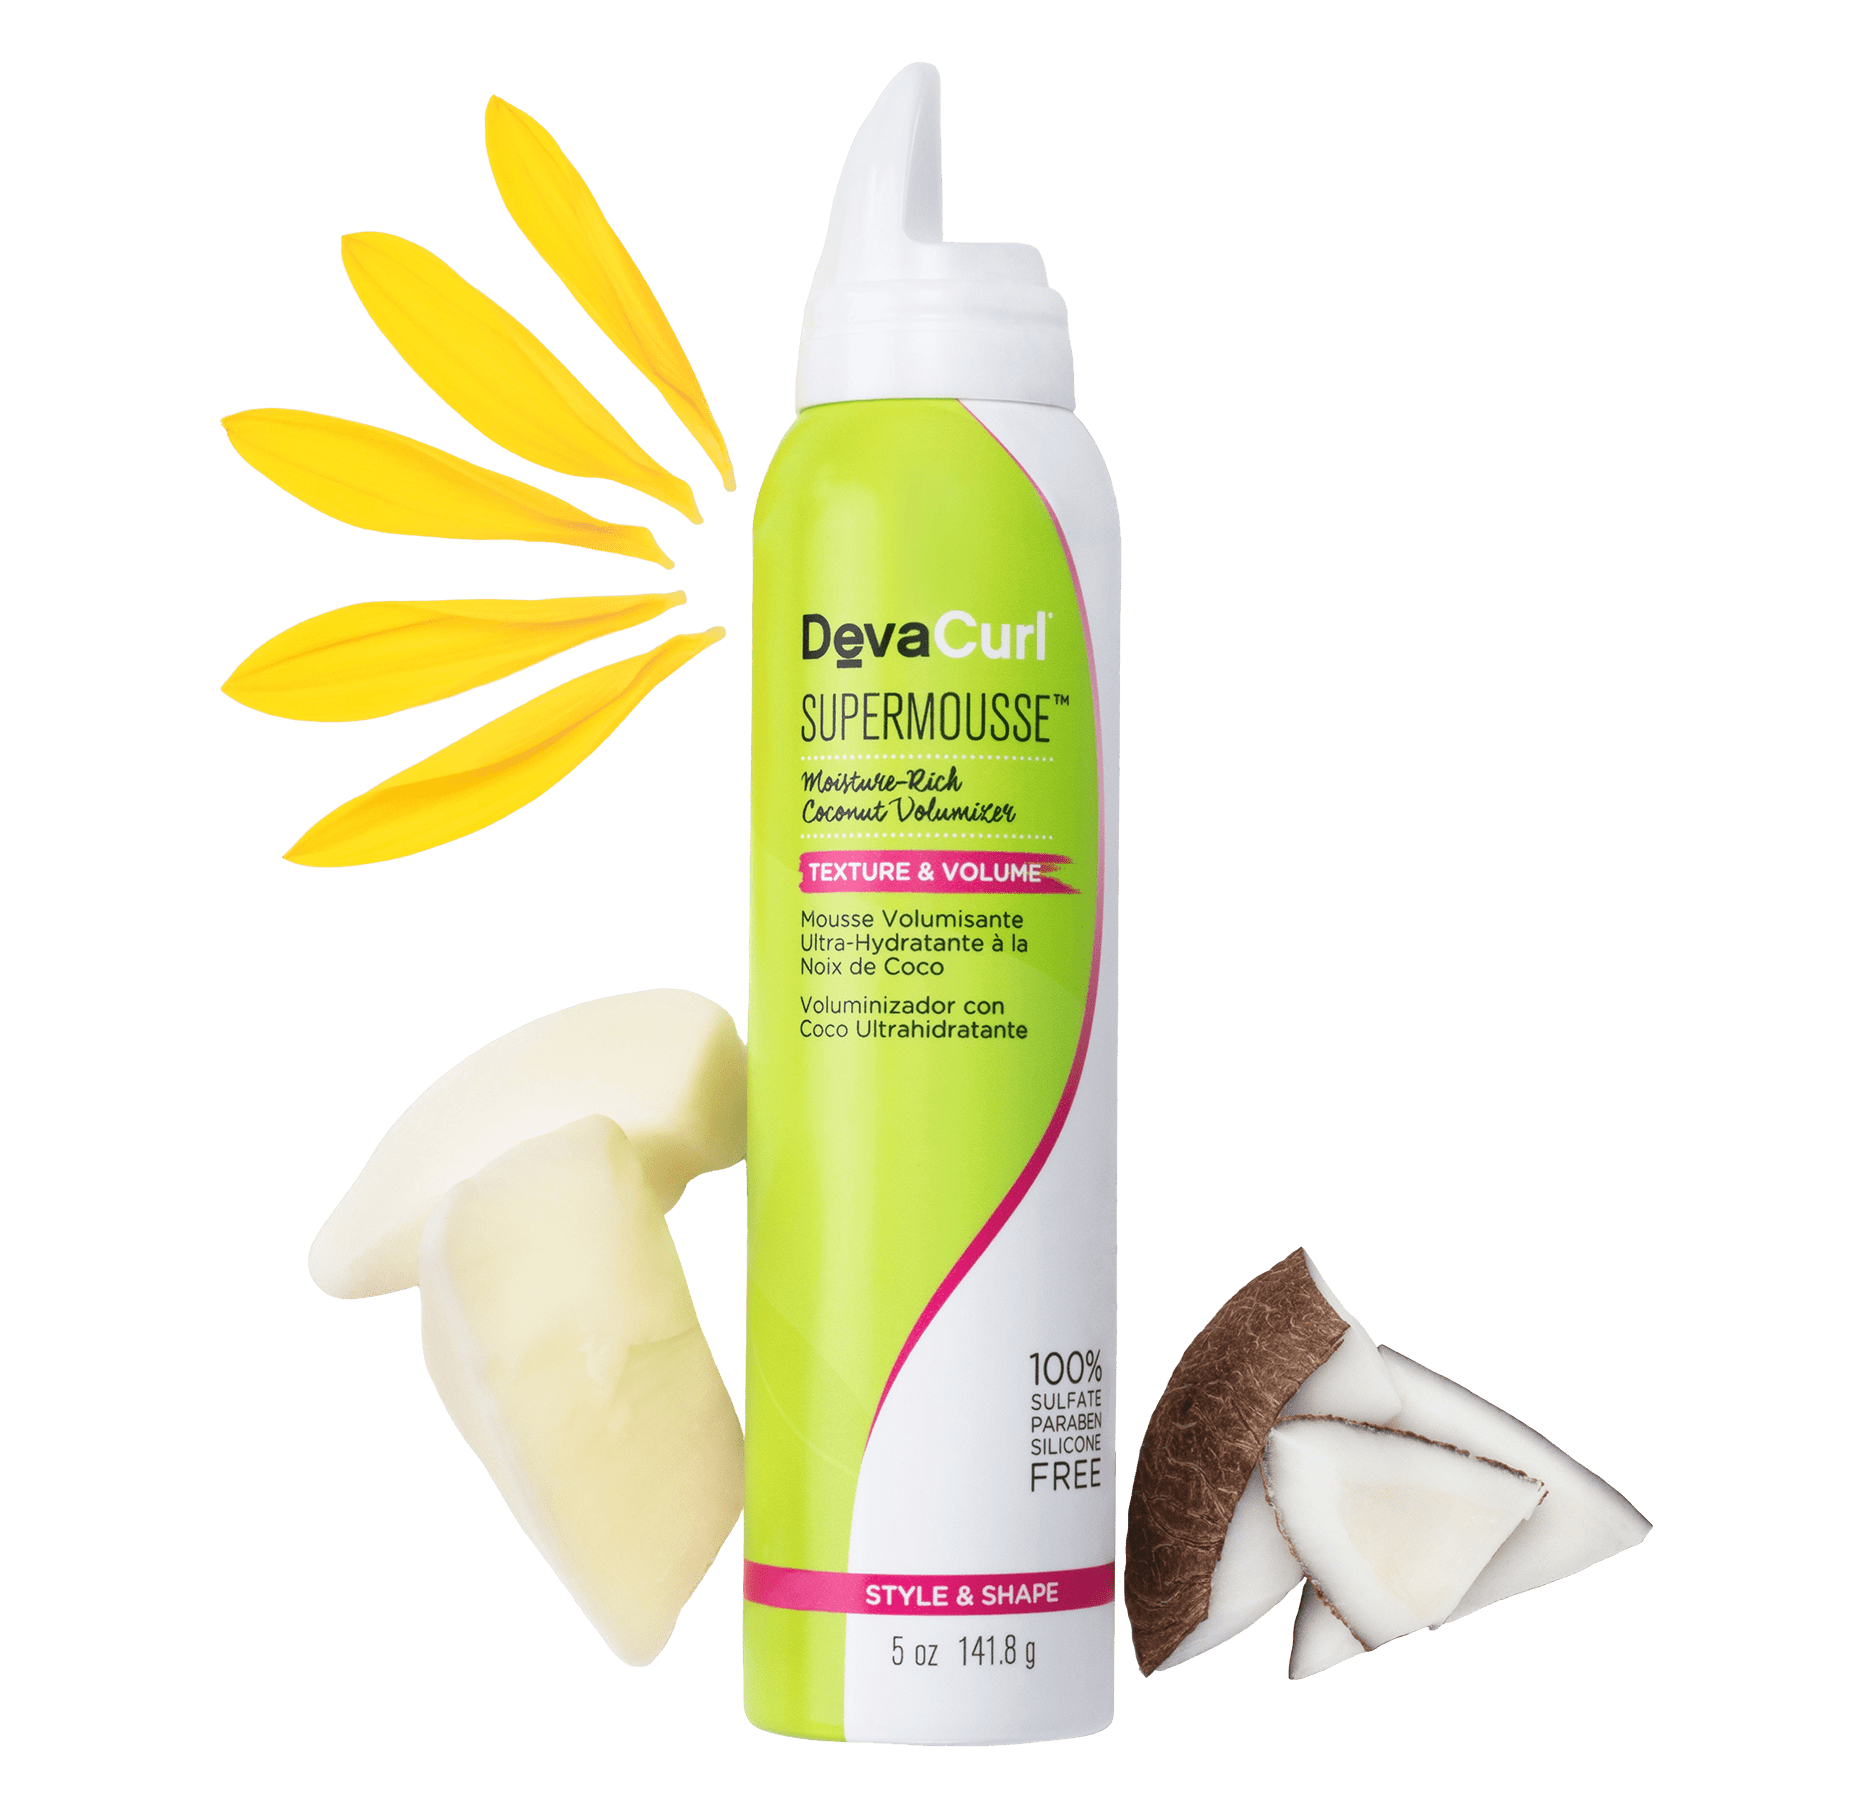 SuperMousse can with raw ingredients: sunflower petals, coconut pieces and tacuma butter